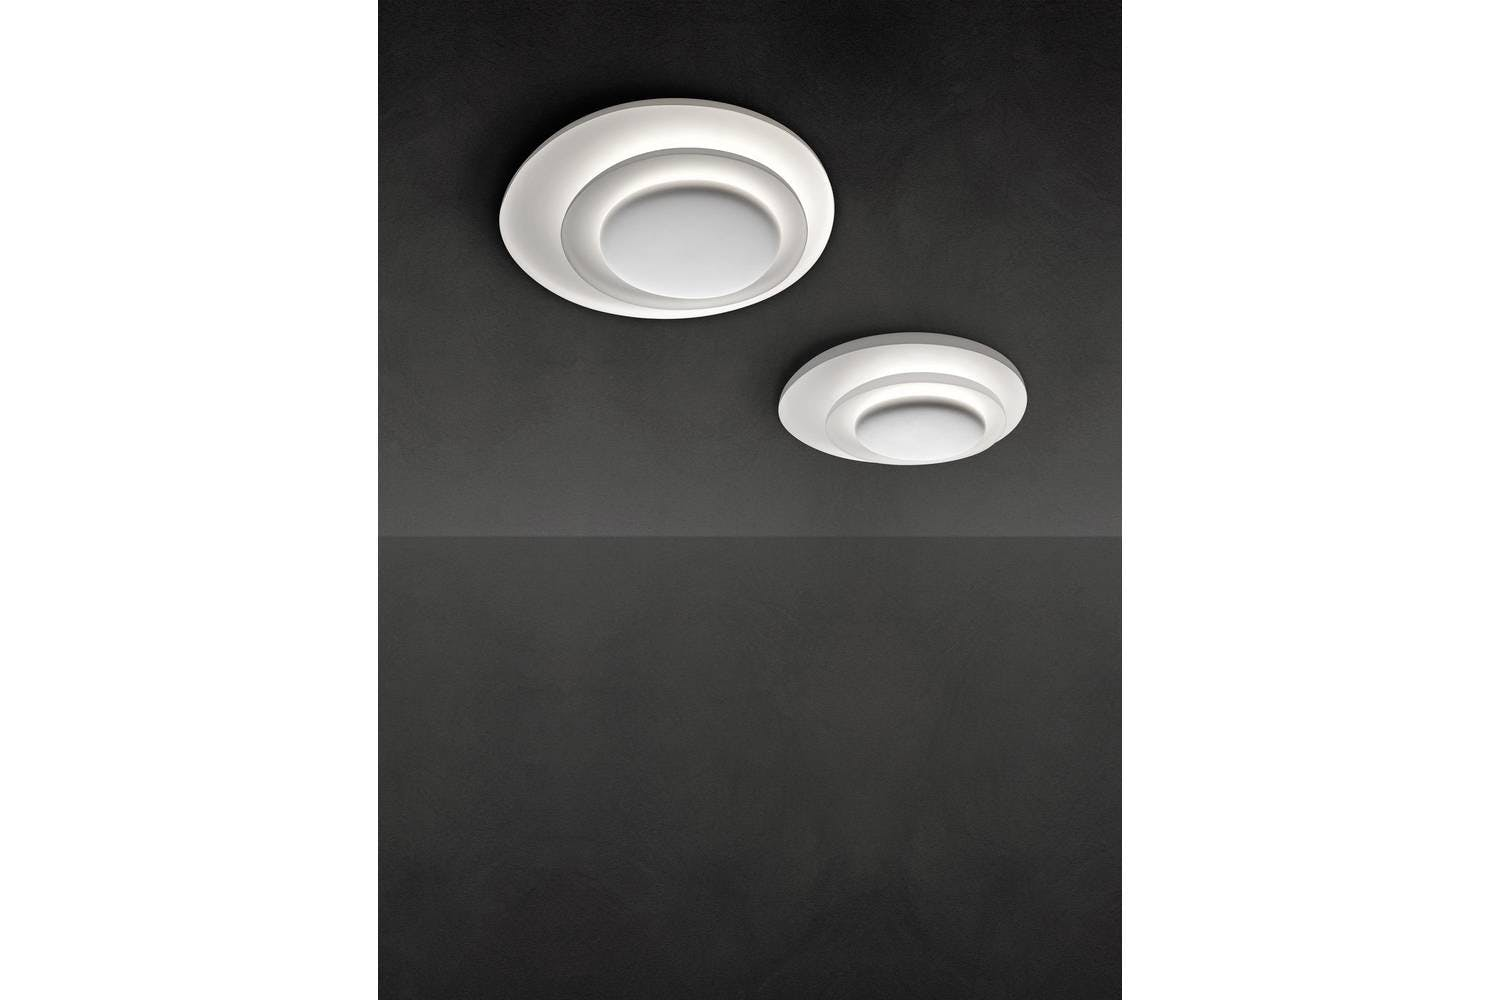 Bahia Led Dimmable Ceiling Wall Lamp By Lucidi Amp Pevere